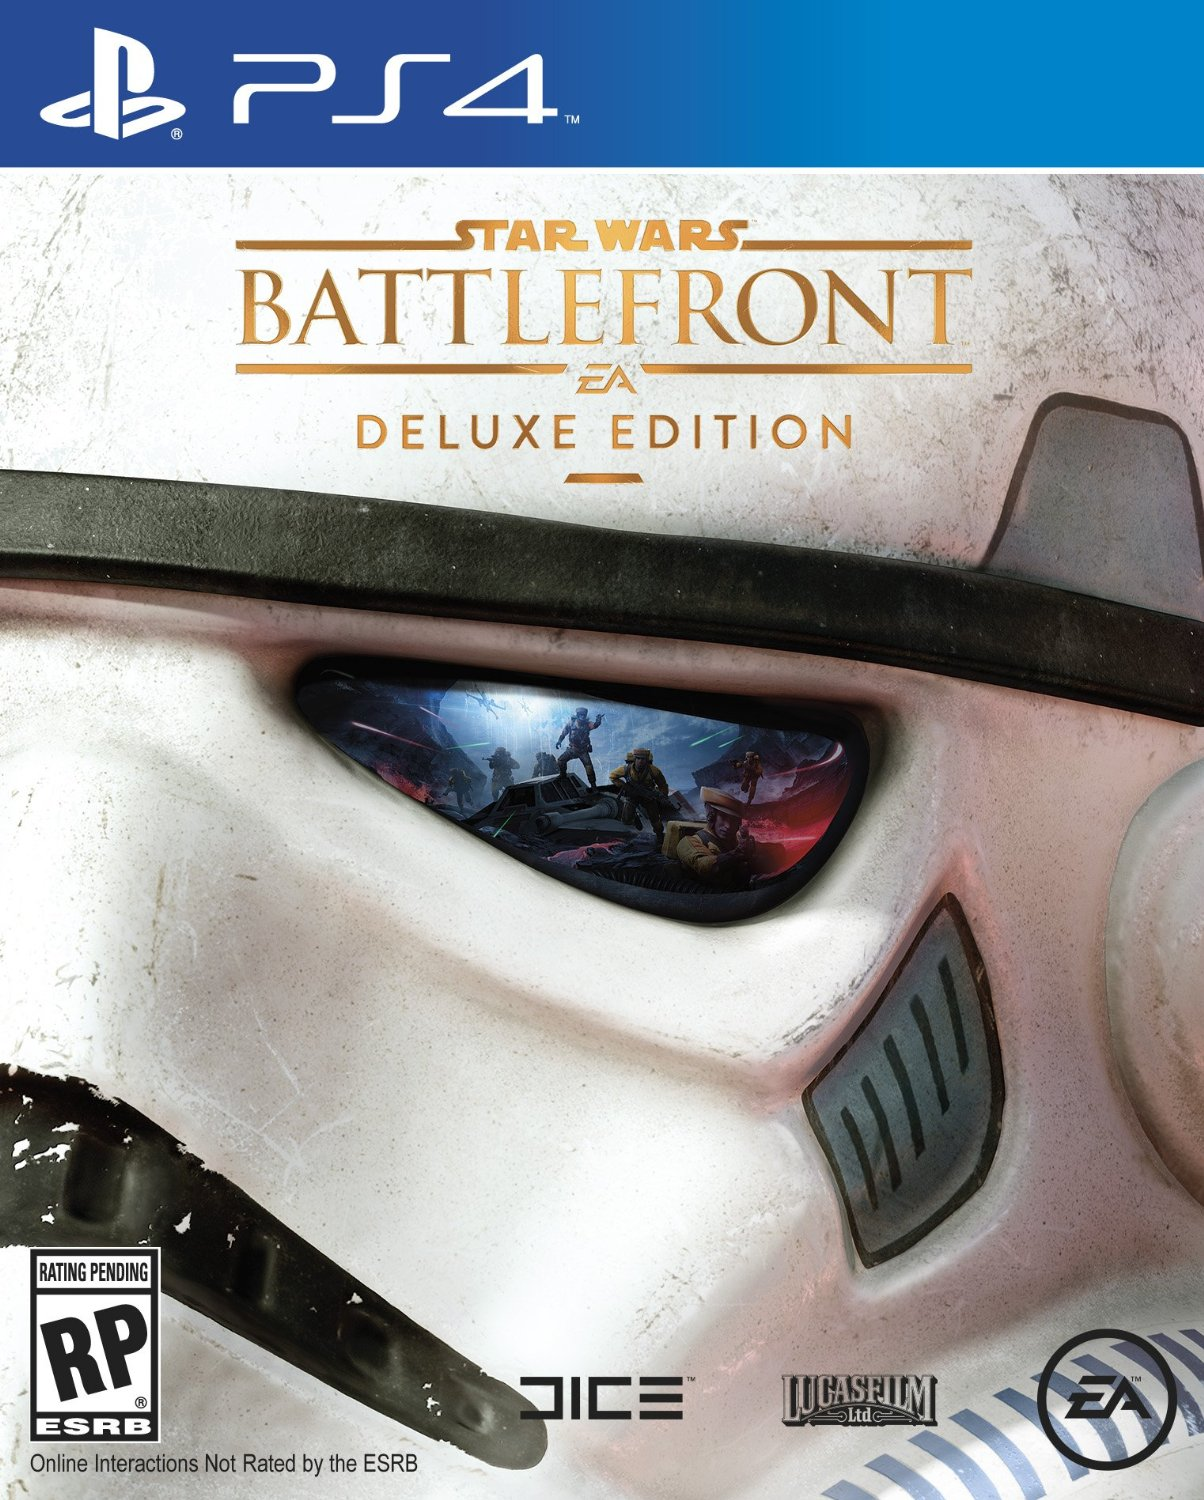 PS4 Star Wars Battlefront DELUXE EDITION (PlayStation 4)